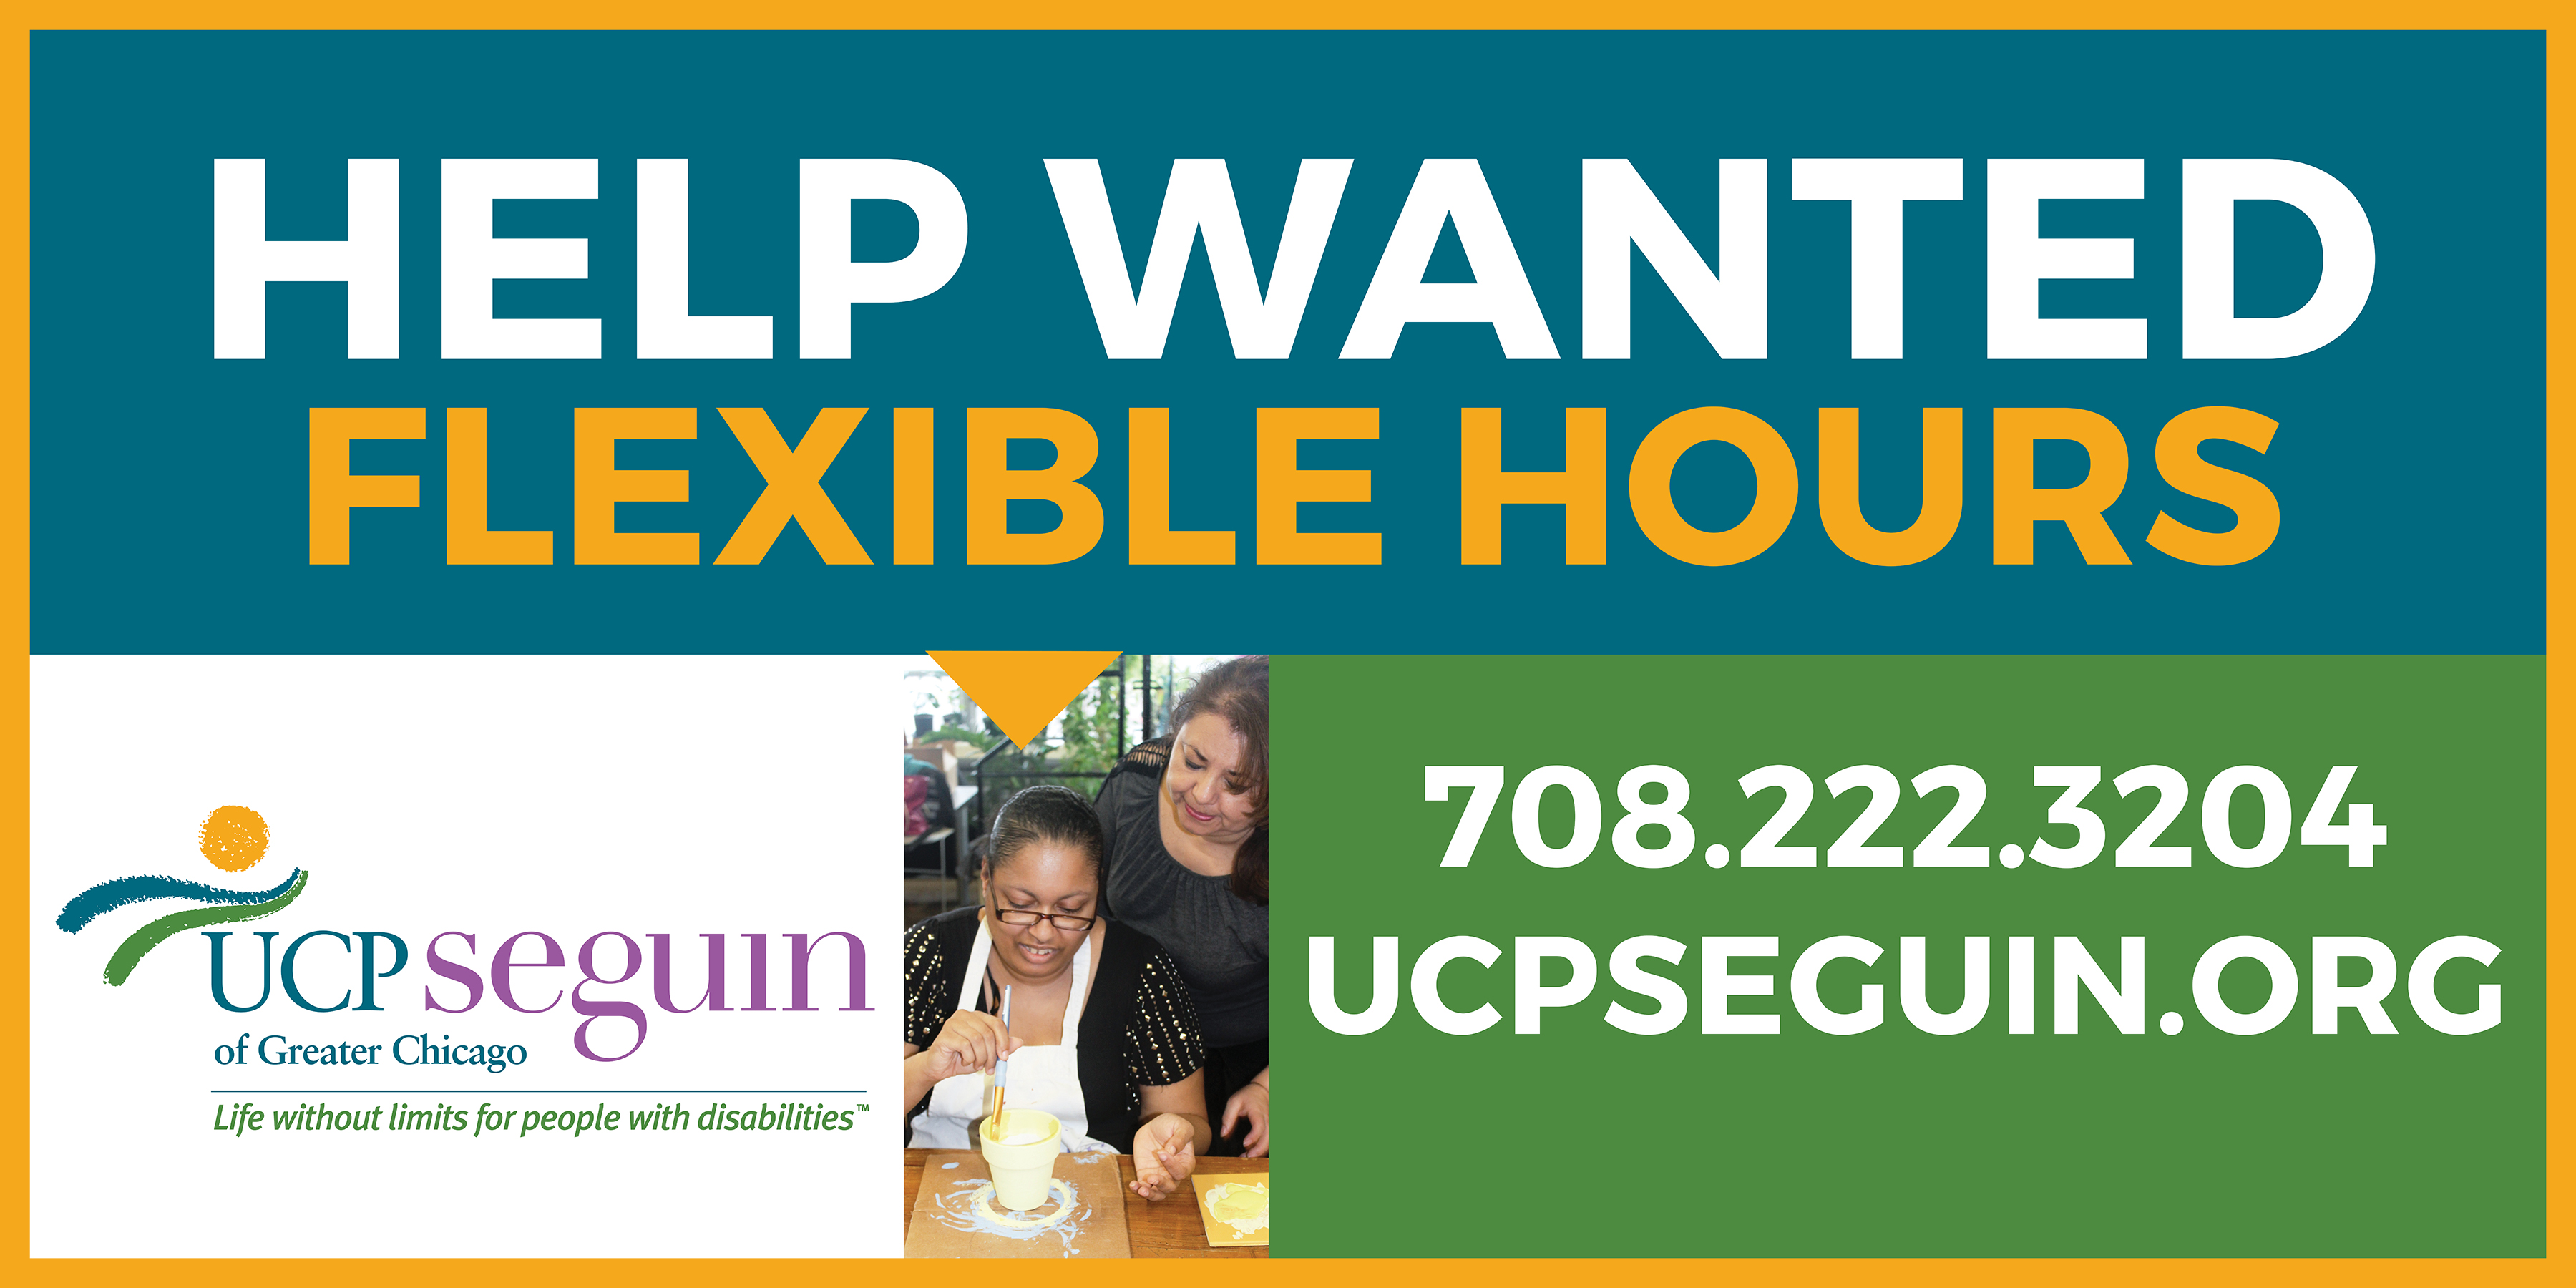 UCP Seguin Of Greater Chicago, Serving People With